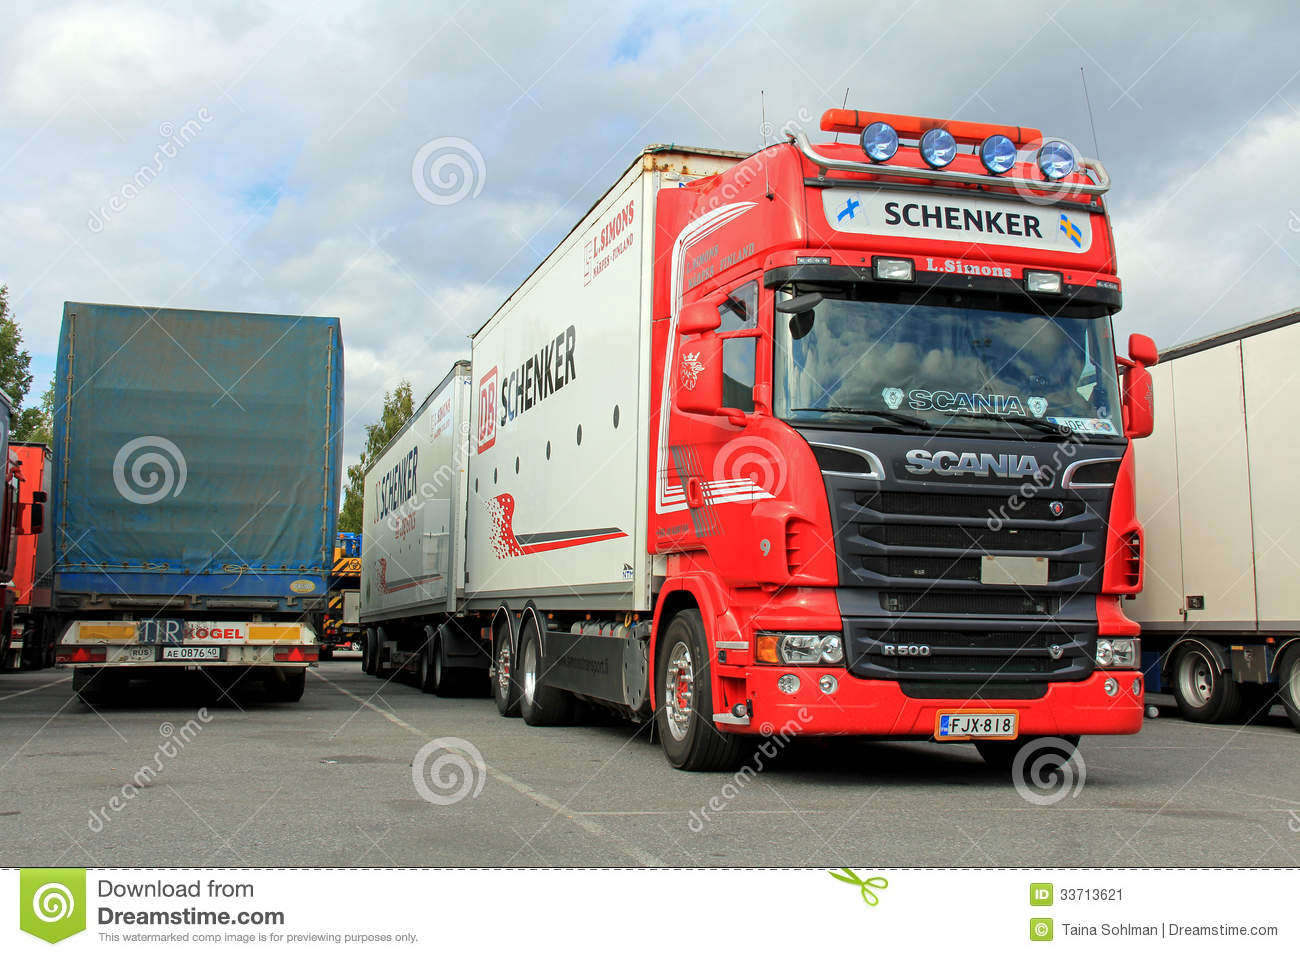 SEMI truck tractor trailer transport big rig transportation lorry vehicle together with Dry Vans further atlasterminal furthermore M in addition Stock Image Red Scania R V Db Schenker Trailer Turku Finland September Truck September Turku Finland Land Transport Image33713621. on international semi tractor trailer